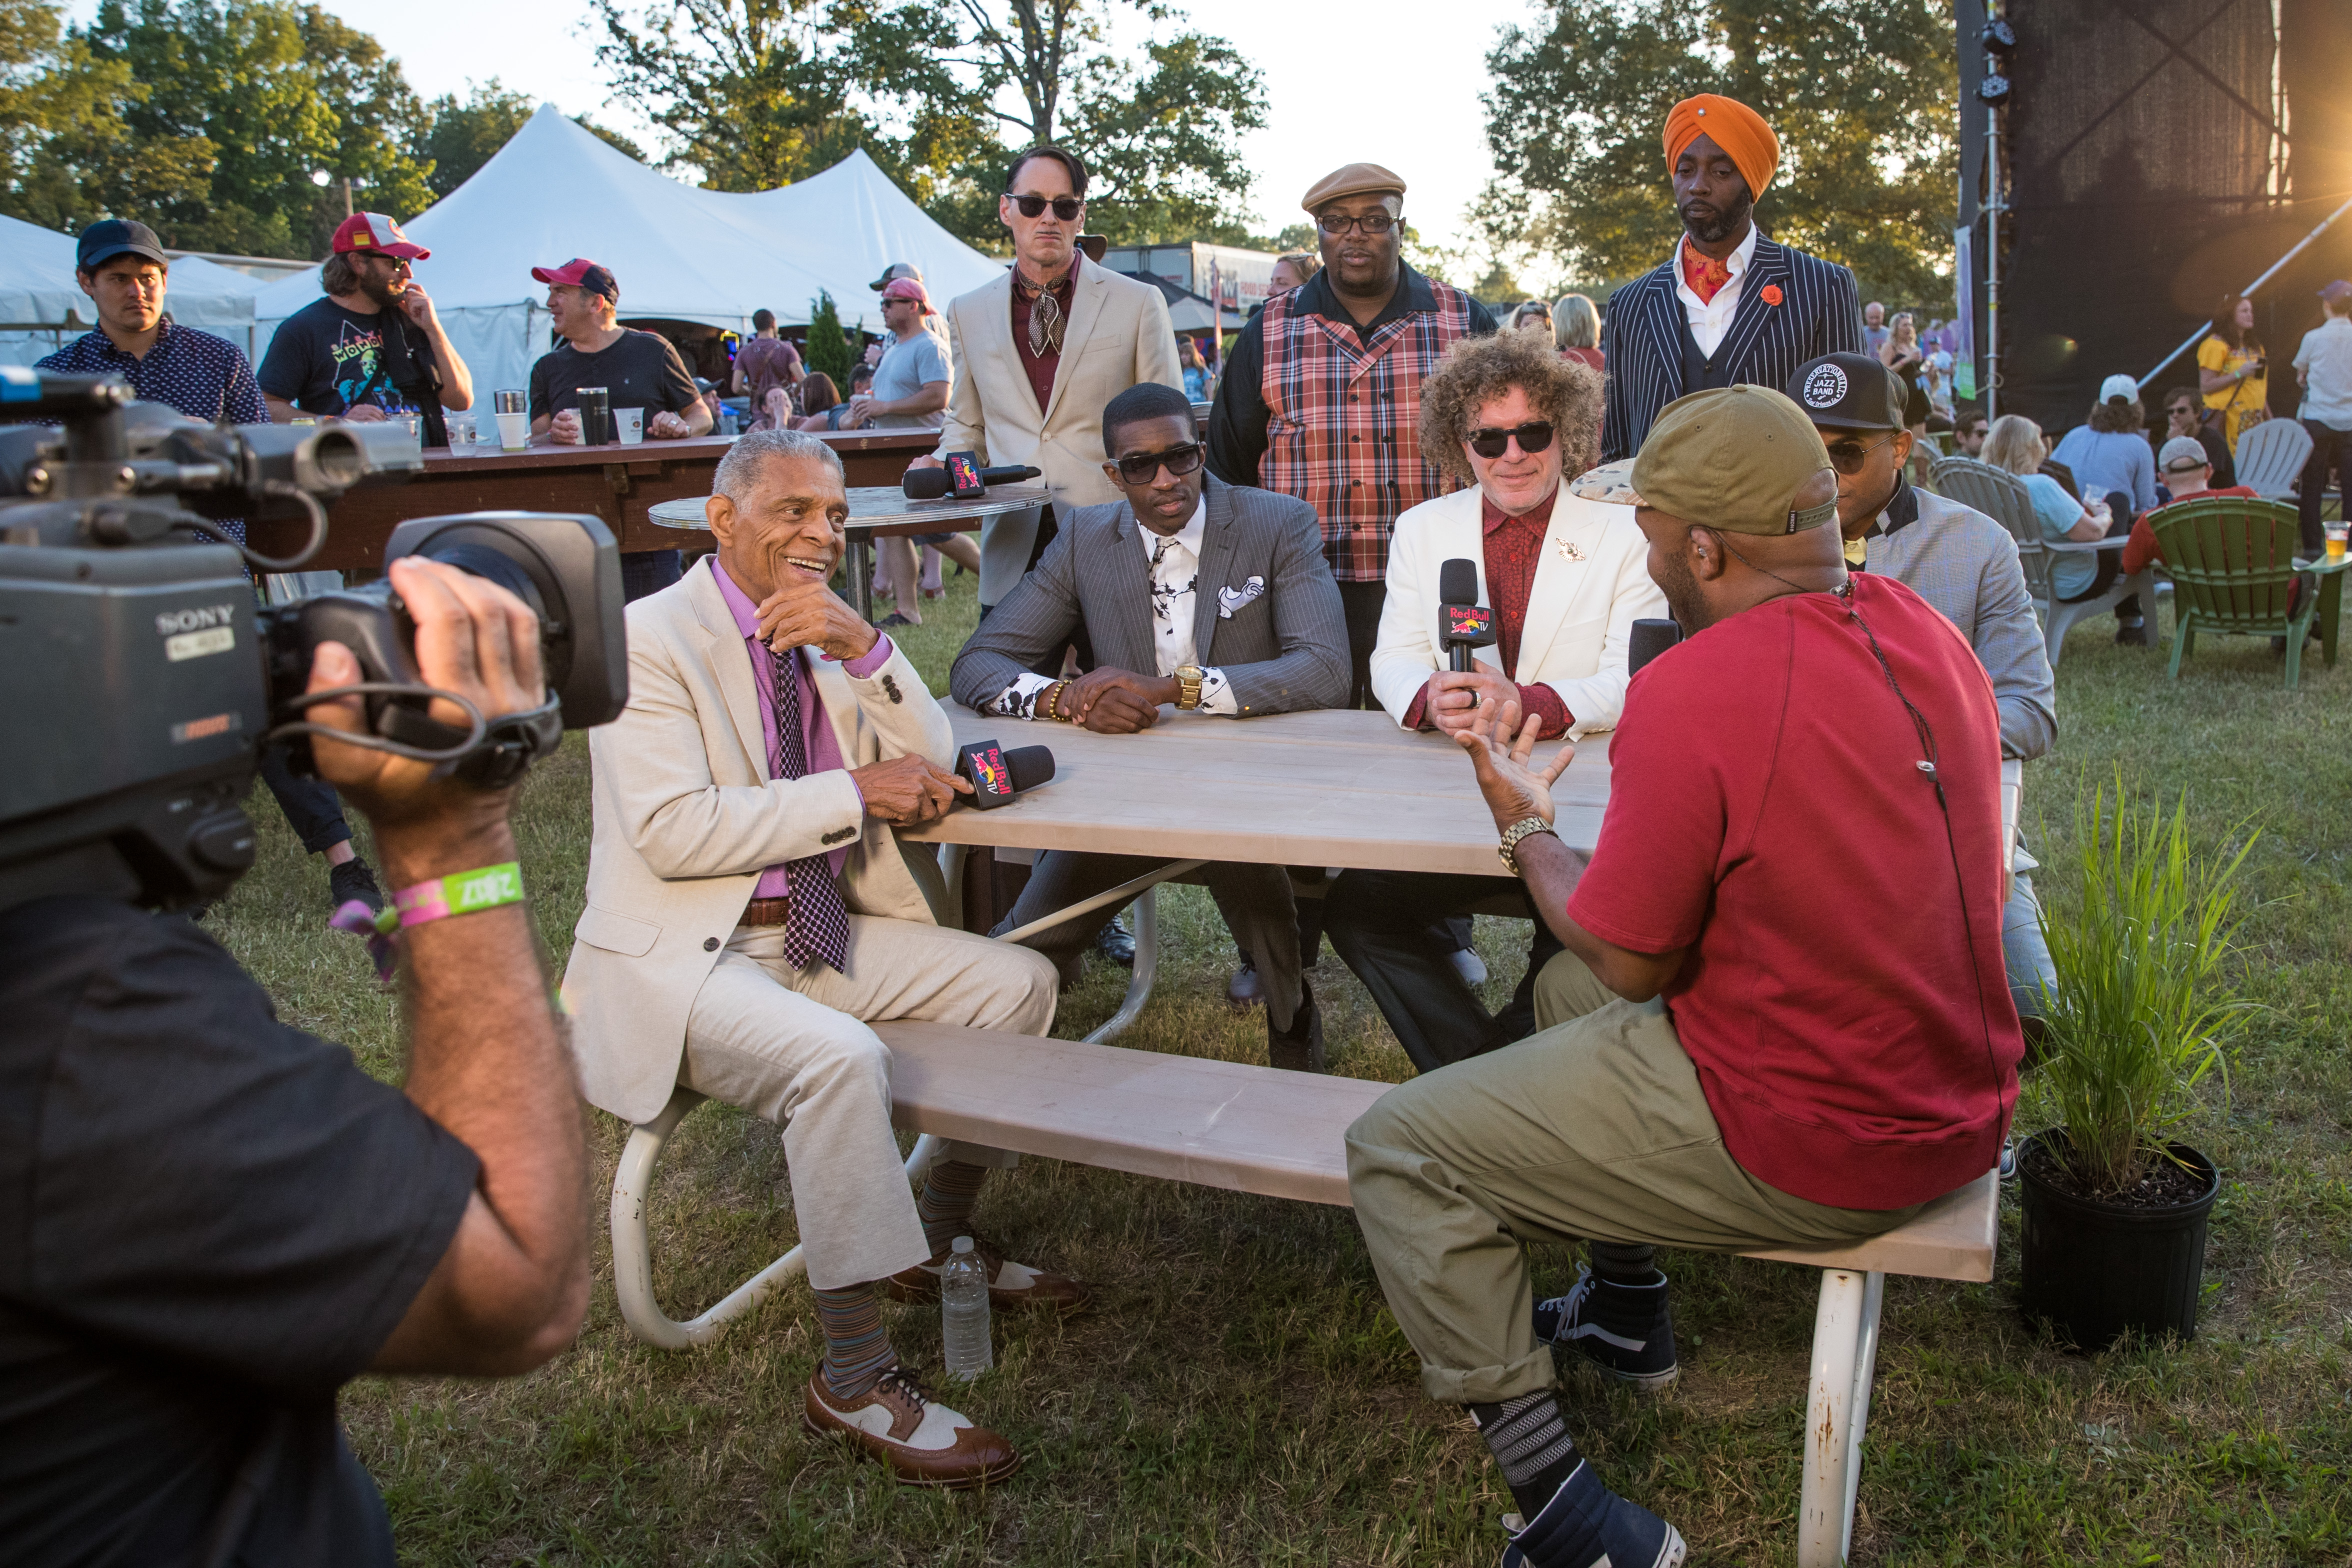 Preservation Hall Jazz Band is interviewed by Sal Masekela at Bonnaroo Music & Arts Festival in Manchester, TN, USA on June 9, 2017.